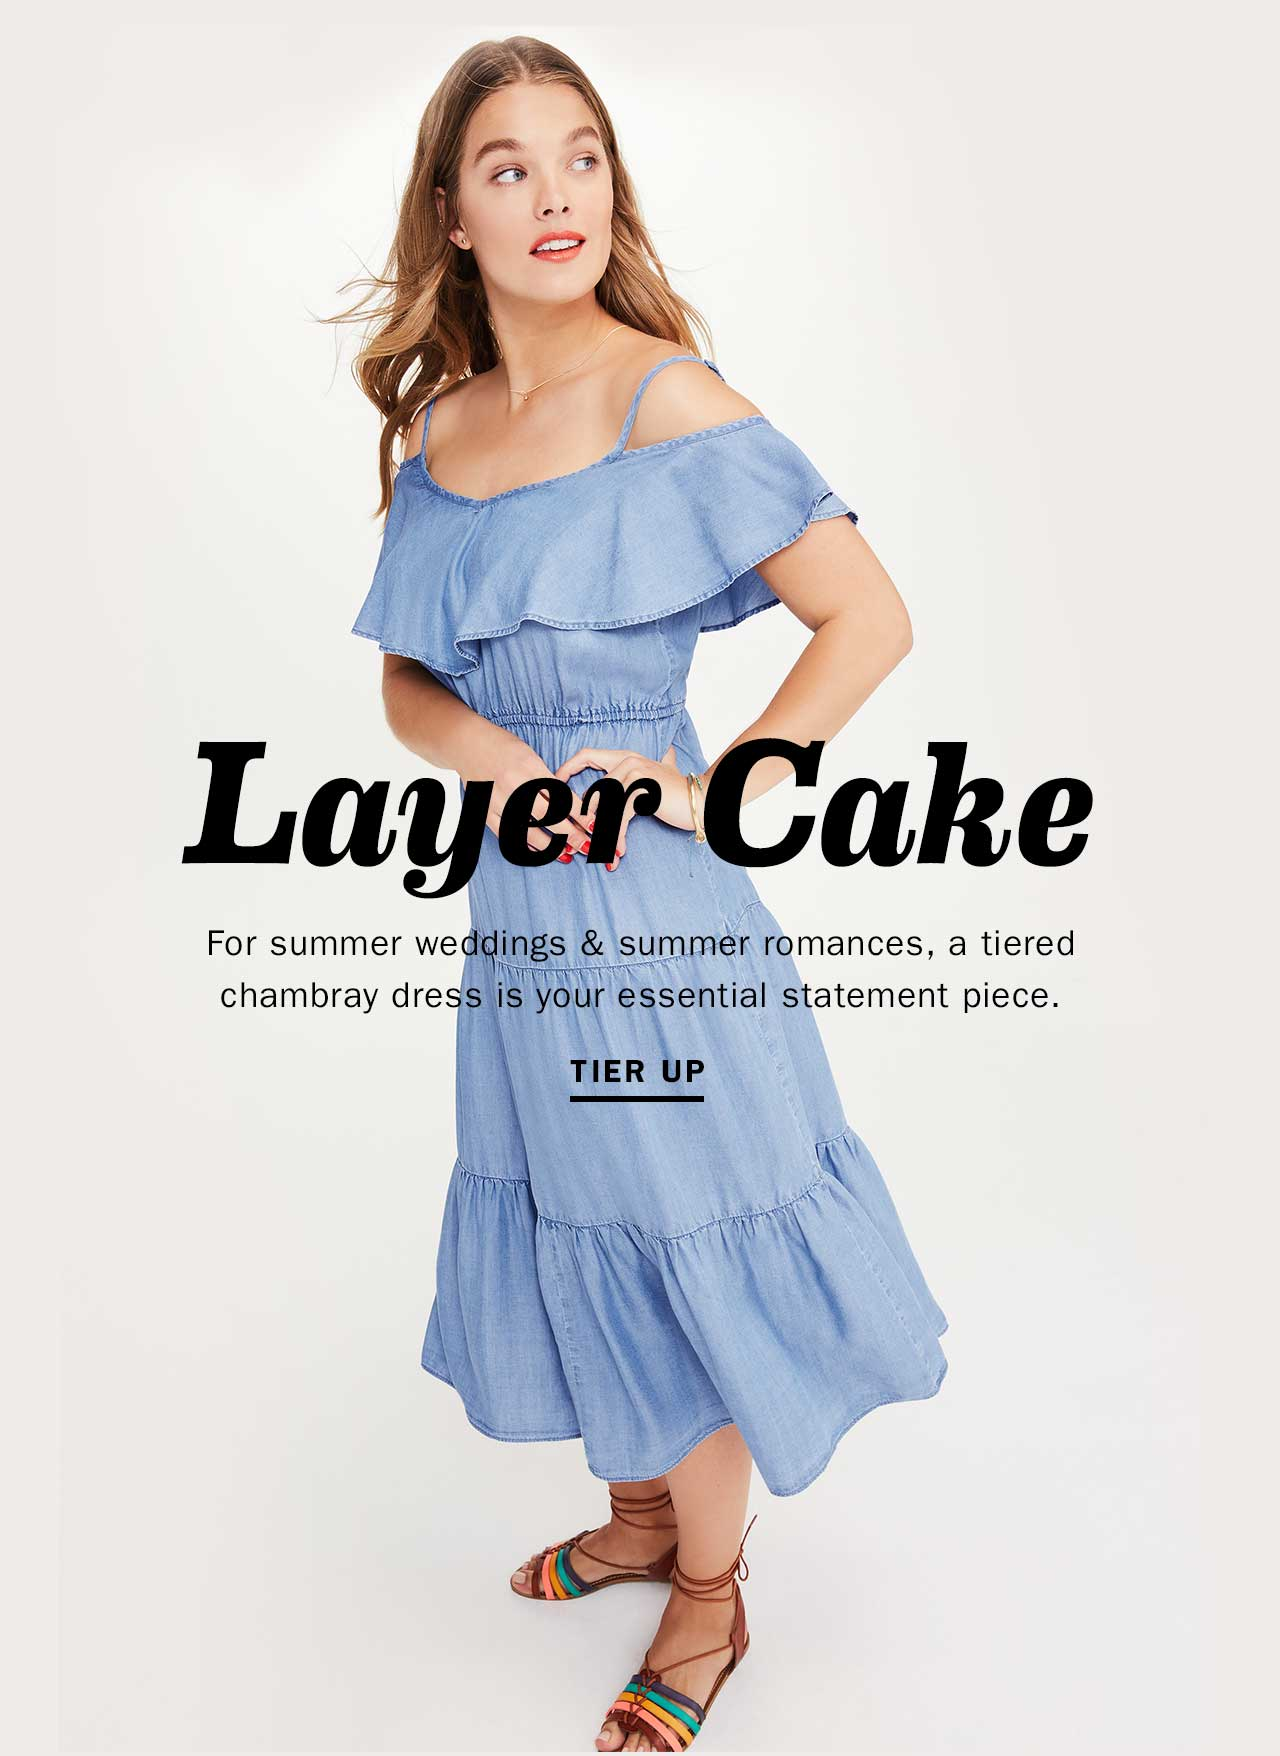 Old navy canada summer dresses